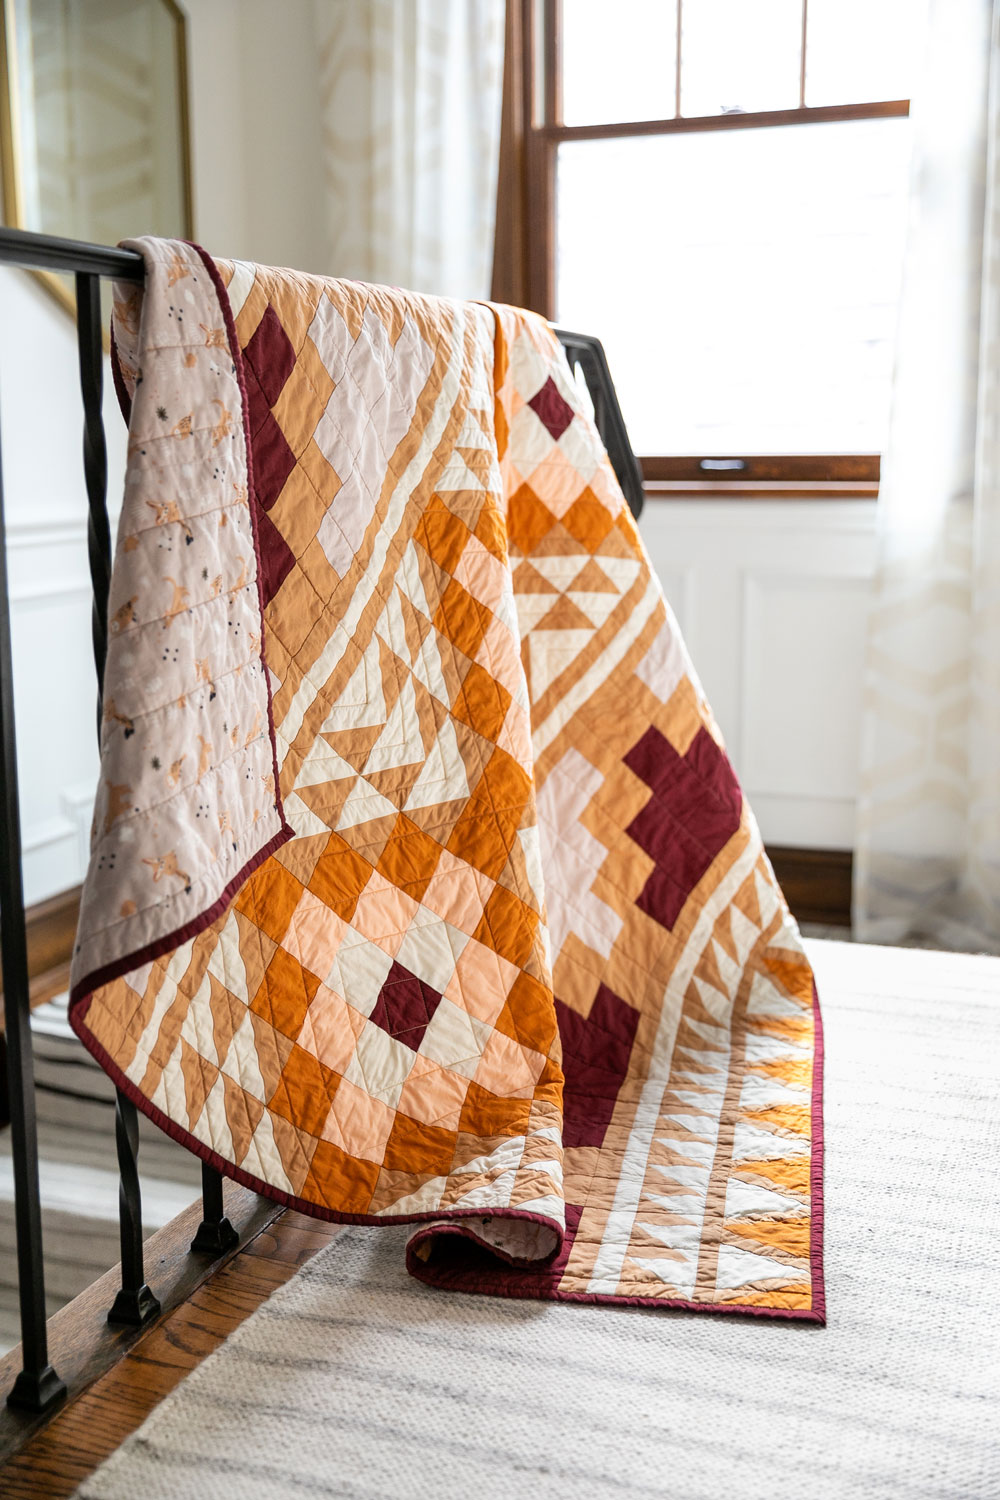 Be inspired by colors of the desert and make your own Mayan Mosaic quilt. With warm solid fabrics, this quilt pattern looks modern and timeless. With an Aztec design, this quilt kit creates a beautiful quilt! suzyquilts.com #quiltkit #aztecquilt #quiltpattern